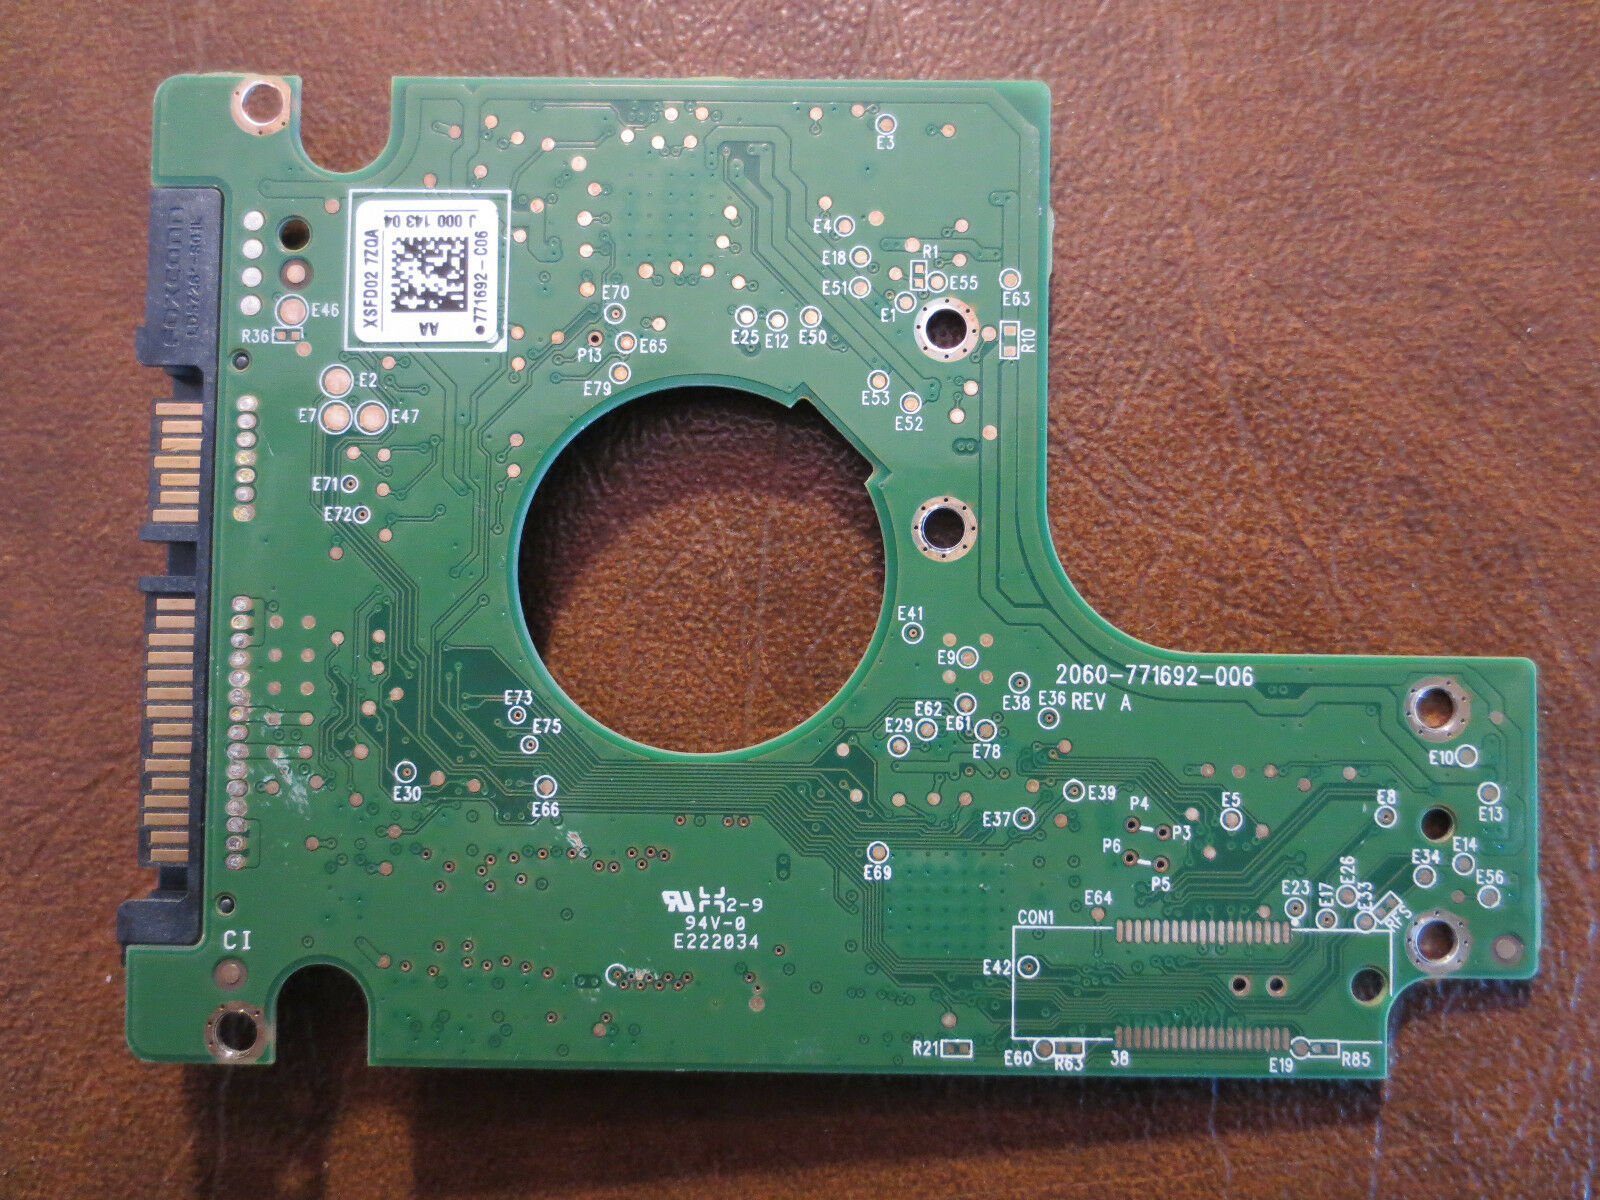 Macs Portables Pcb Hdd 320gb Wd Wd3200bevt 22zest0 2060-771672-004 Rev A 2060-771672-e04 04pd3 Portables, Netbooks